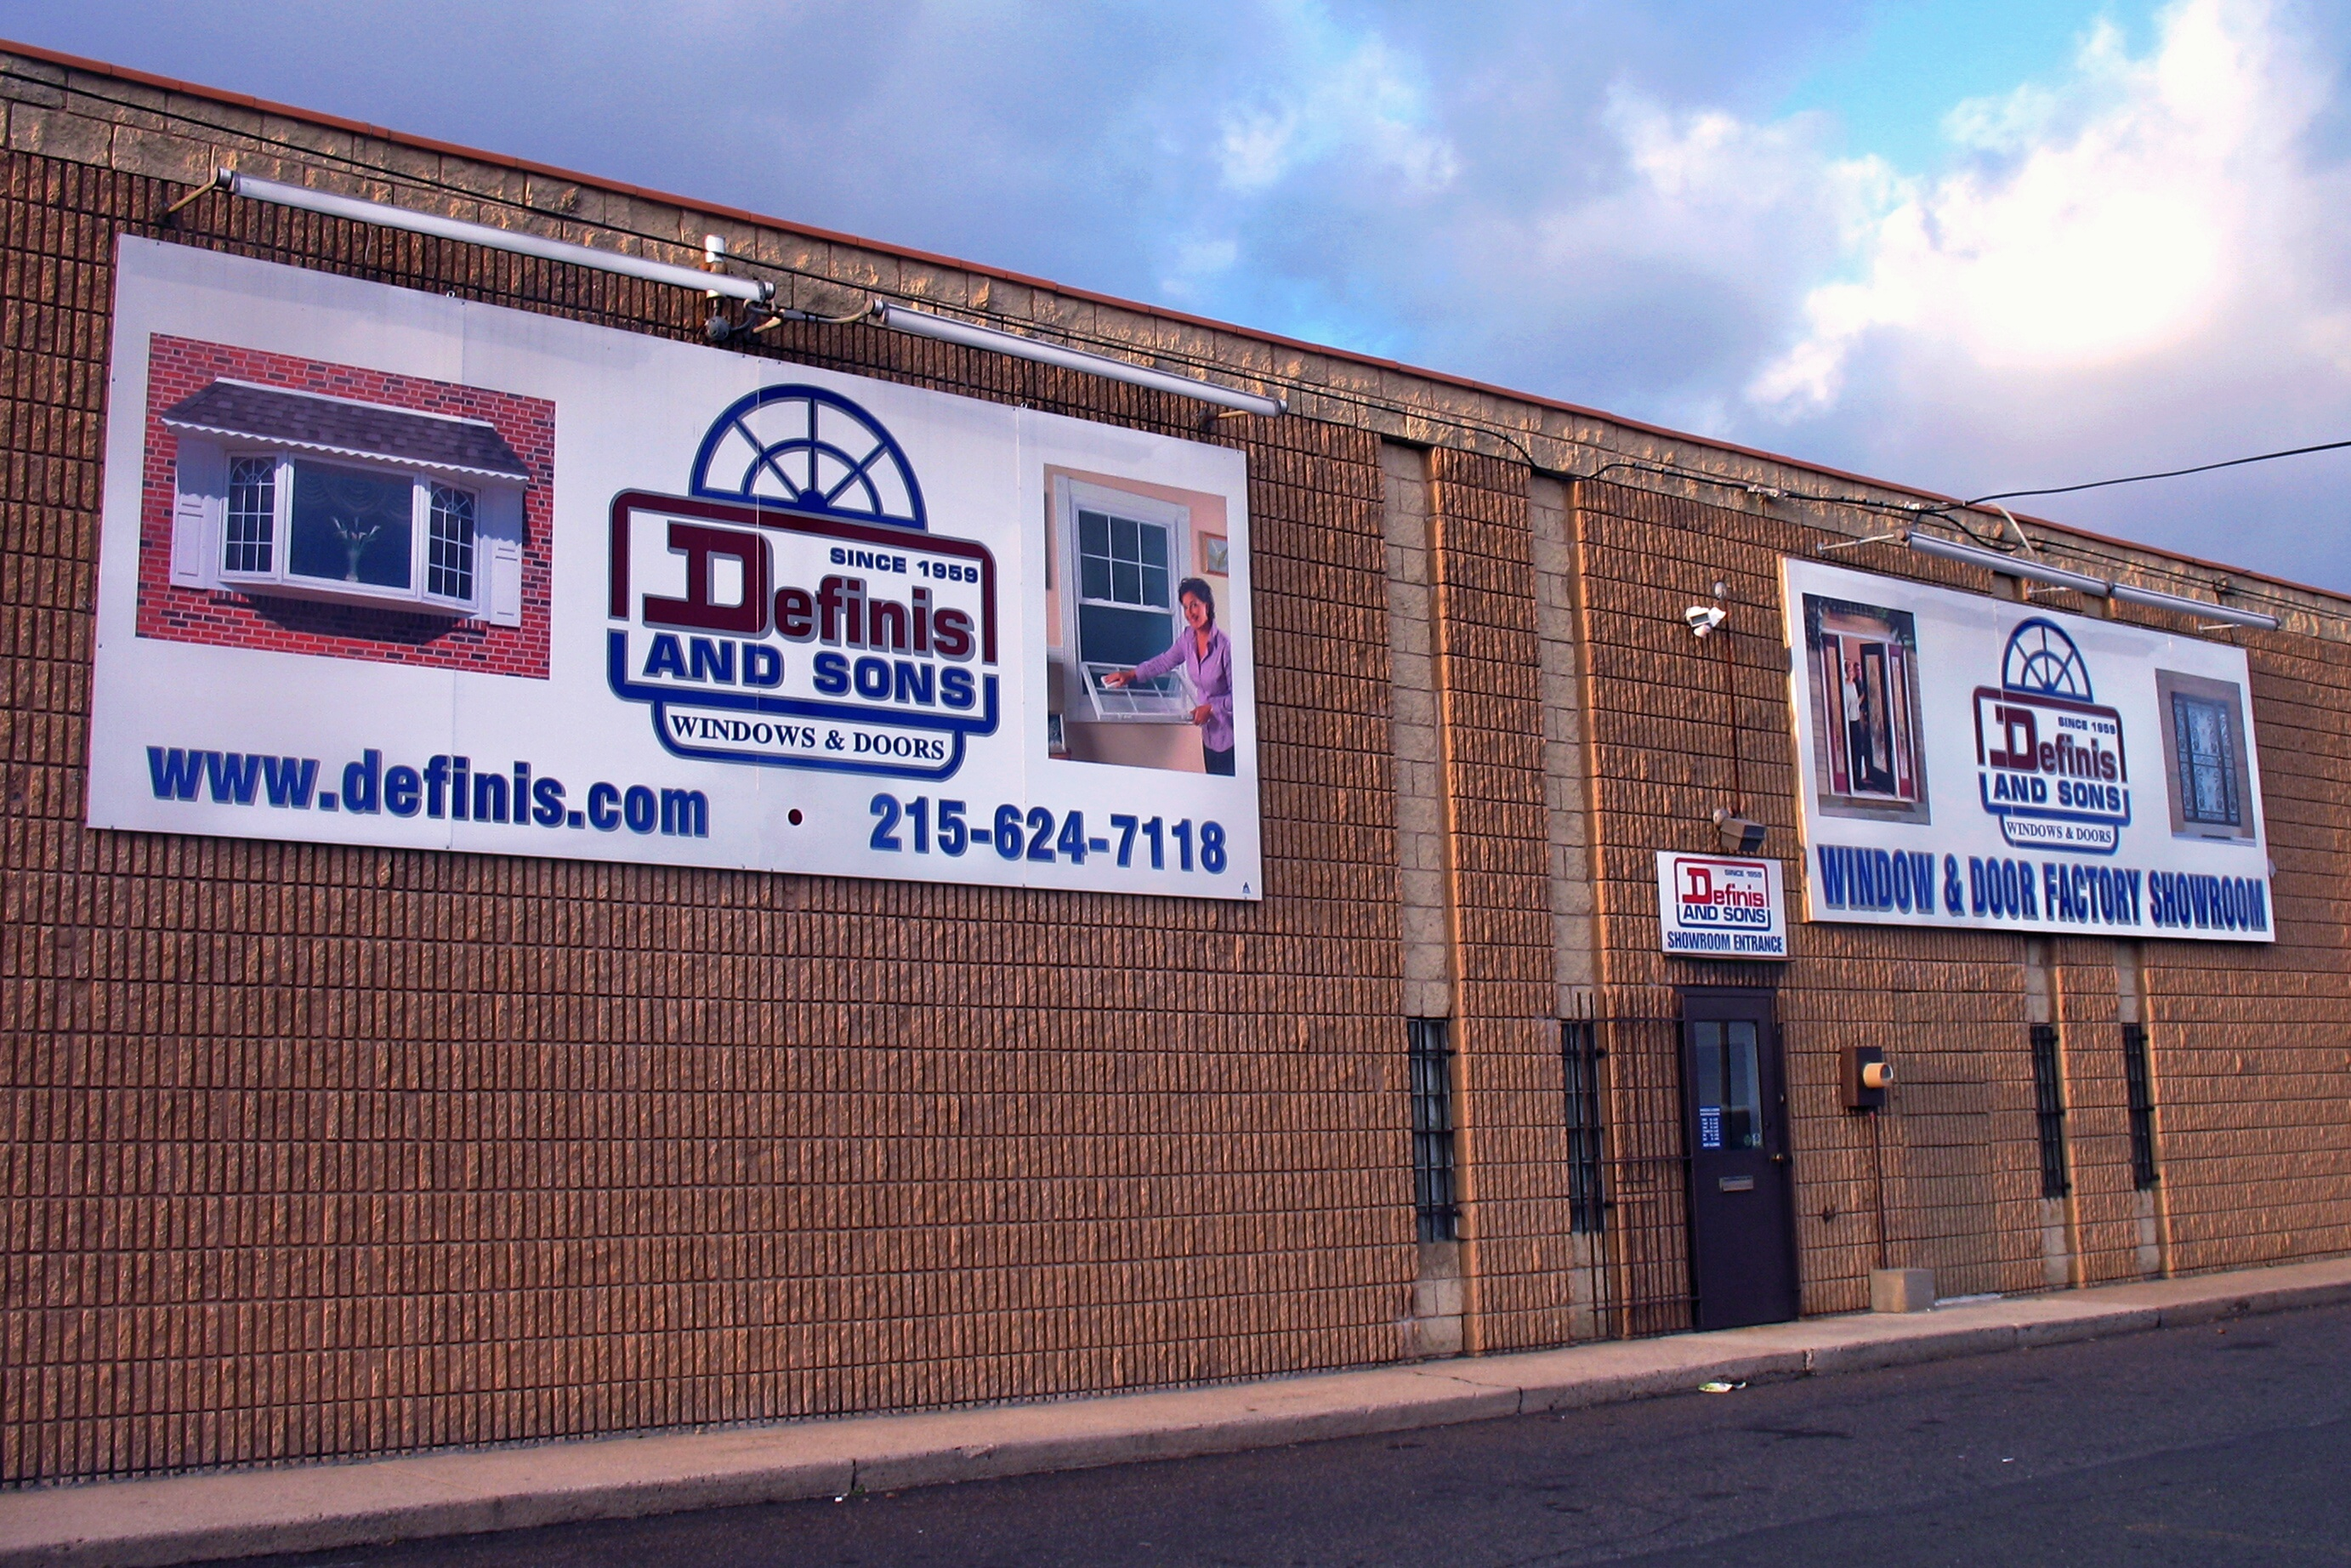 Definis And Sons Window And Door Company Inc